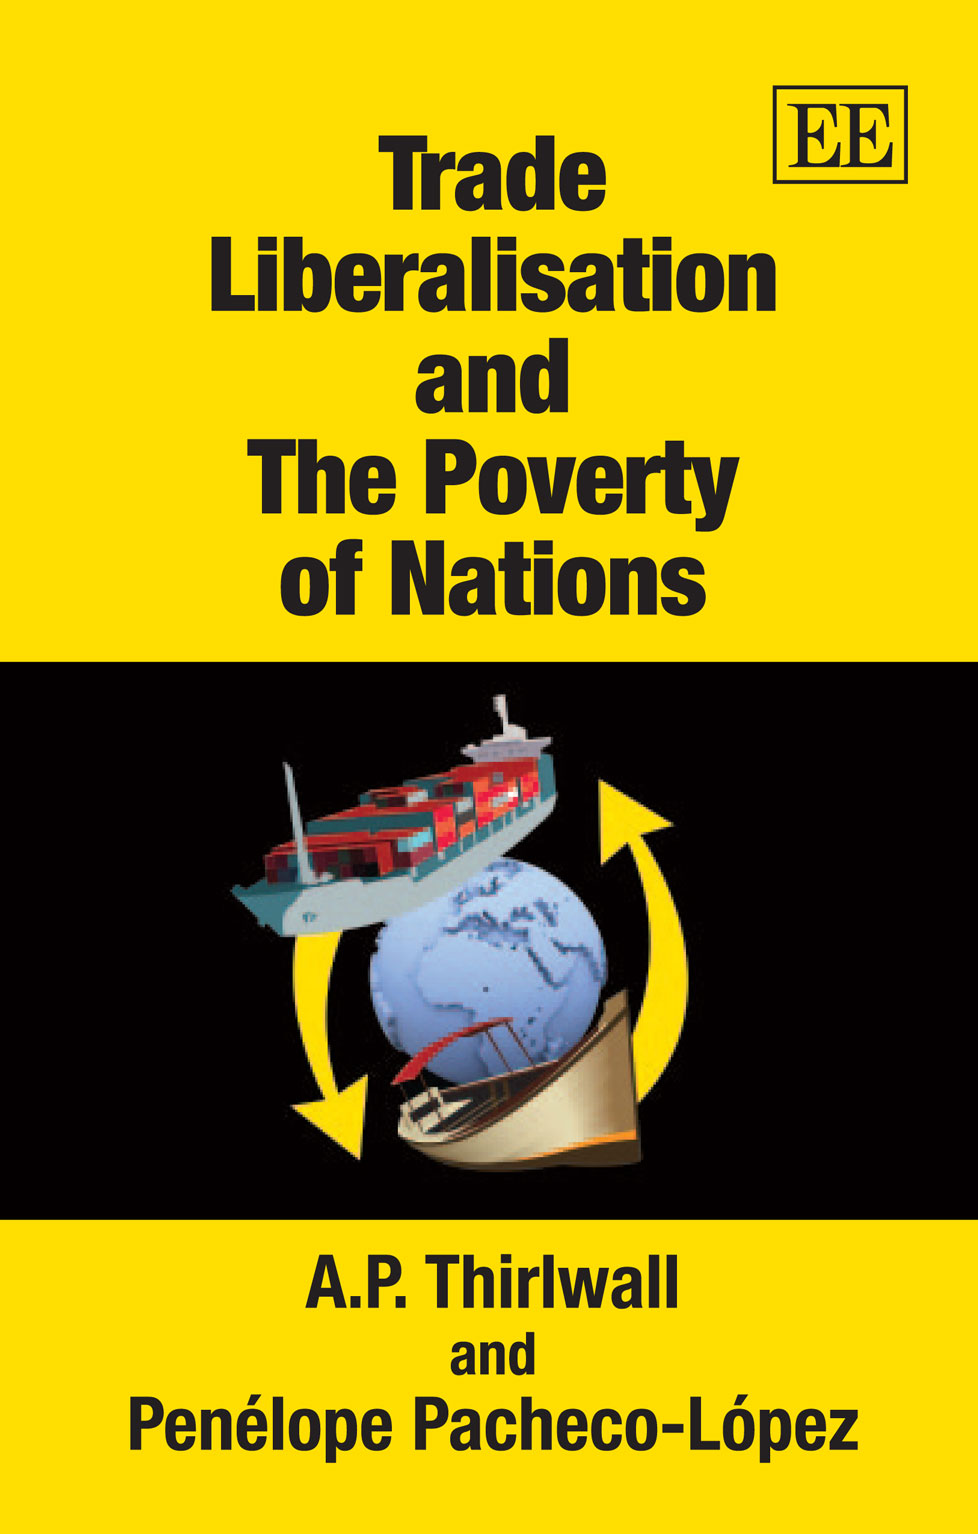 Trade Liberalisation and The Poverty of Nations